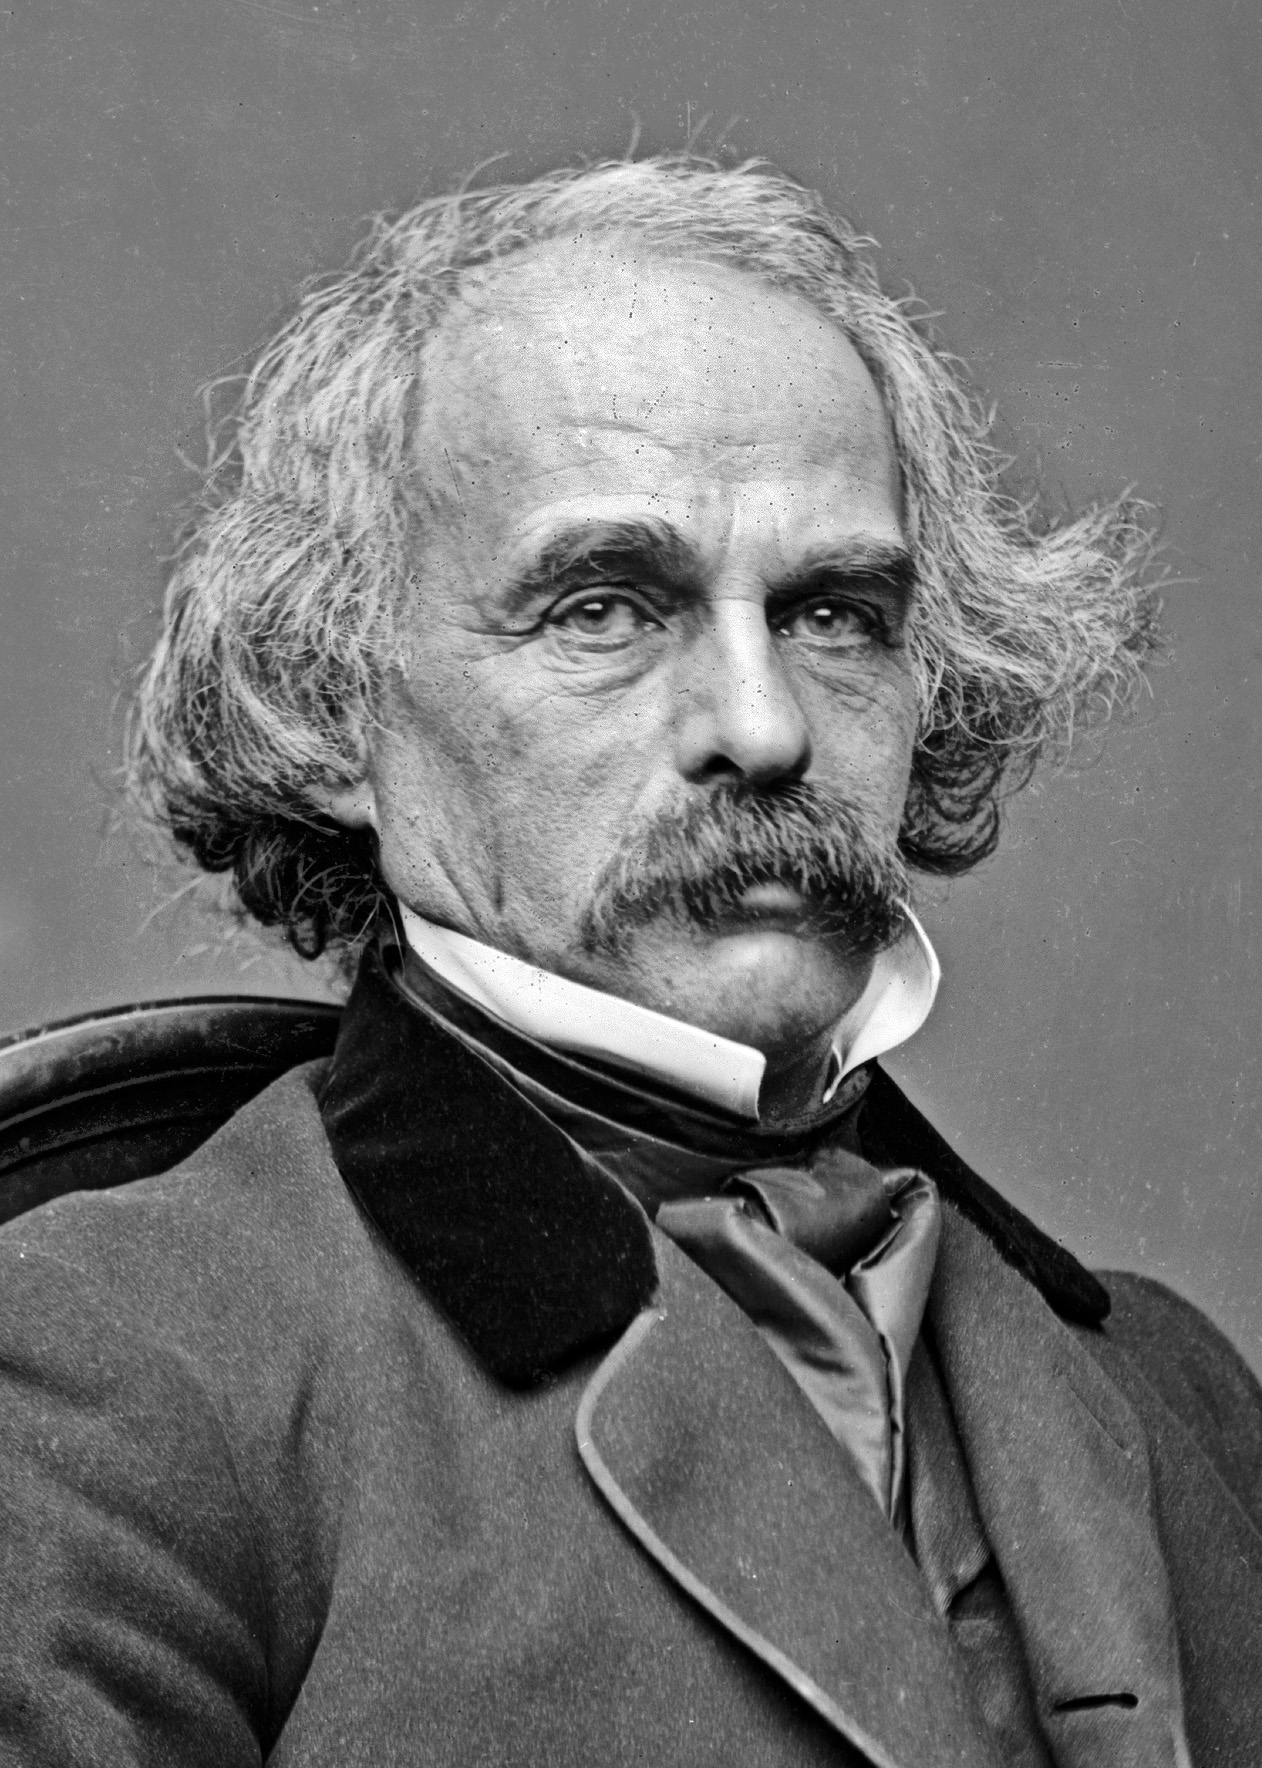 Nathaniel Hawthorne in the 1860s